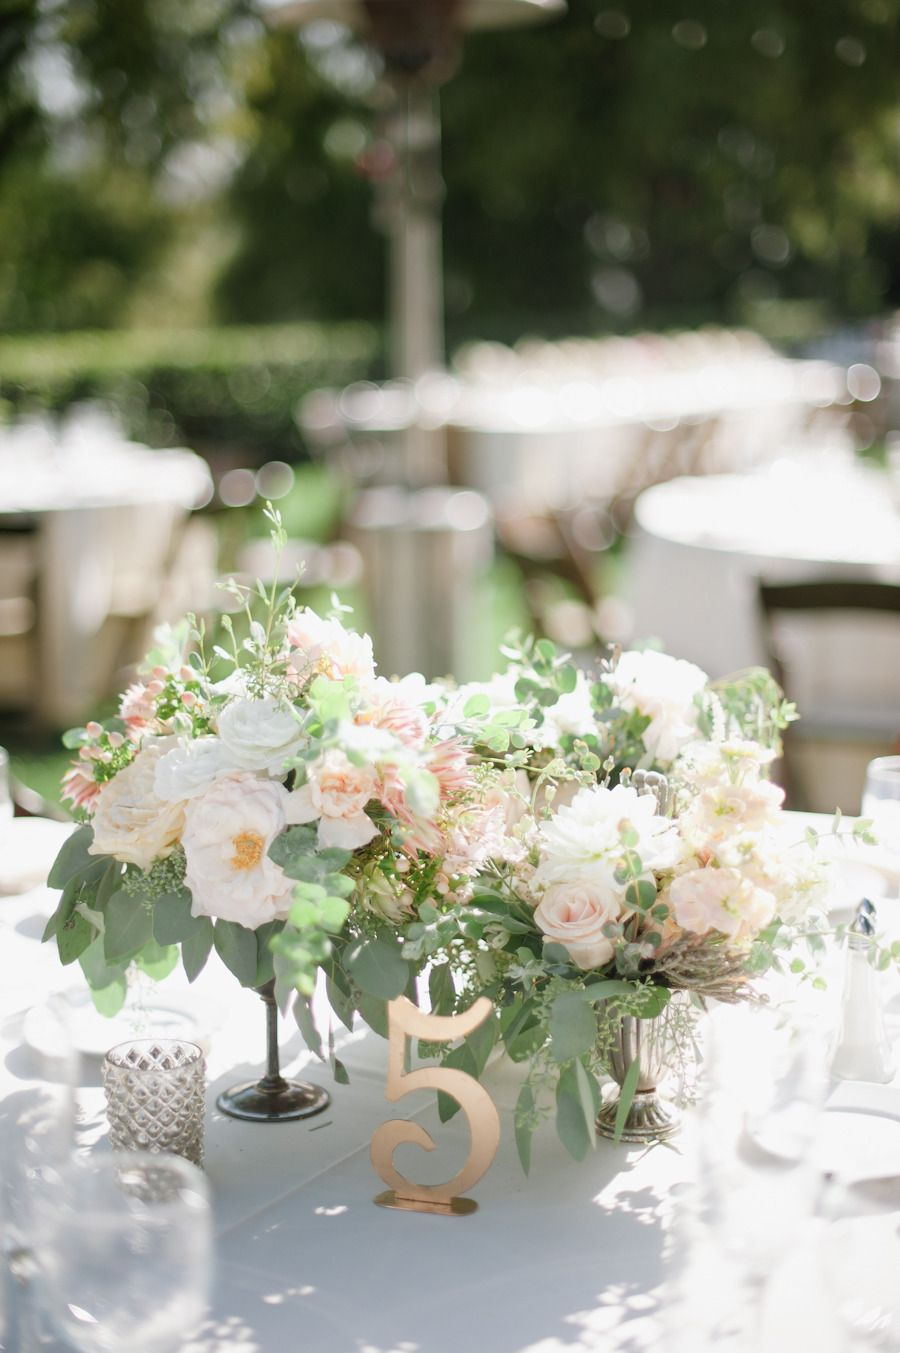 Garden wedding decoration ideas  Romantic Maravilla Gardens Wedding  California wedding